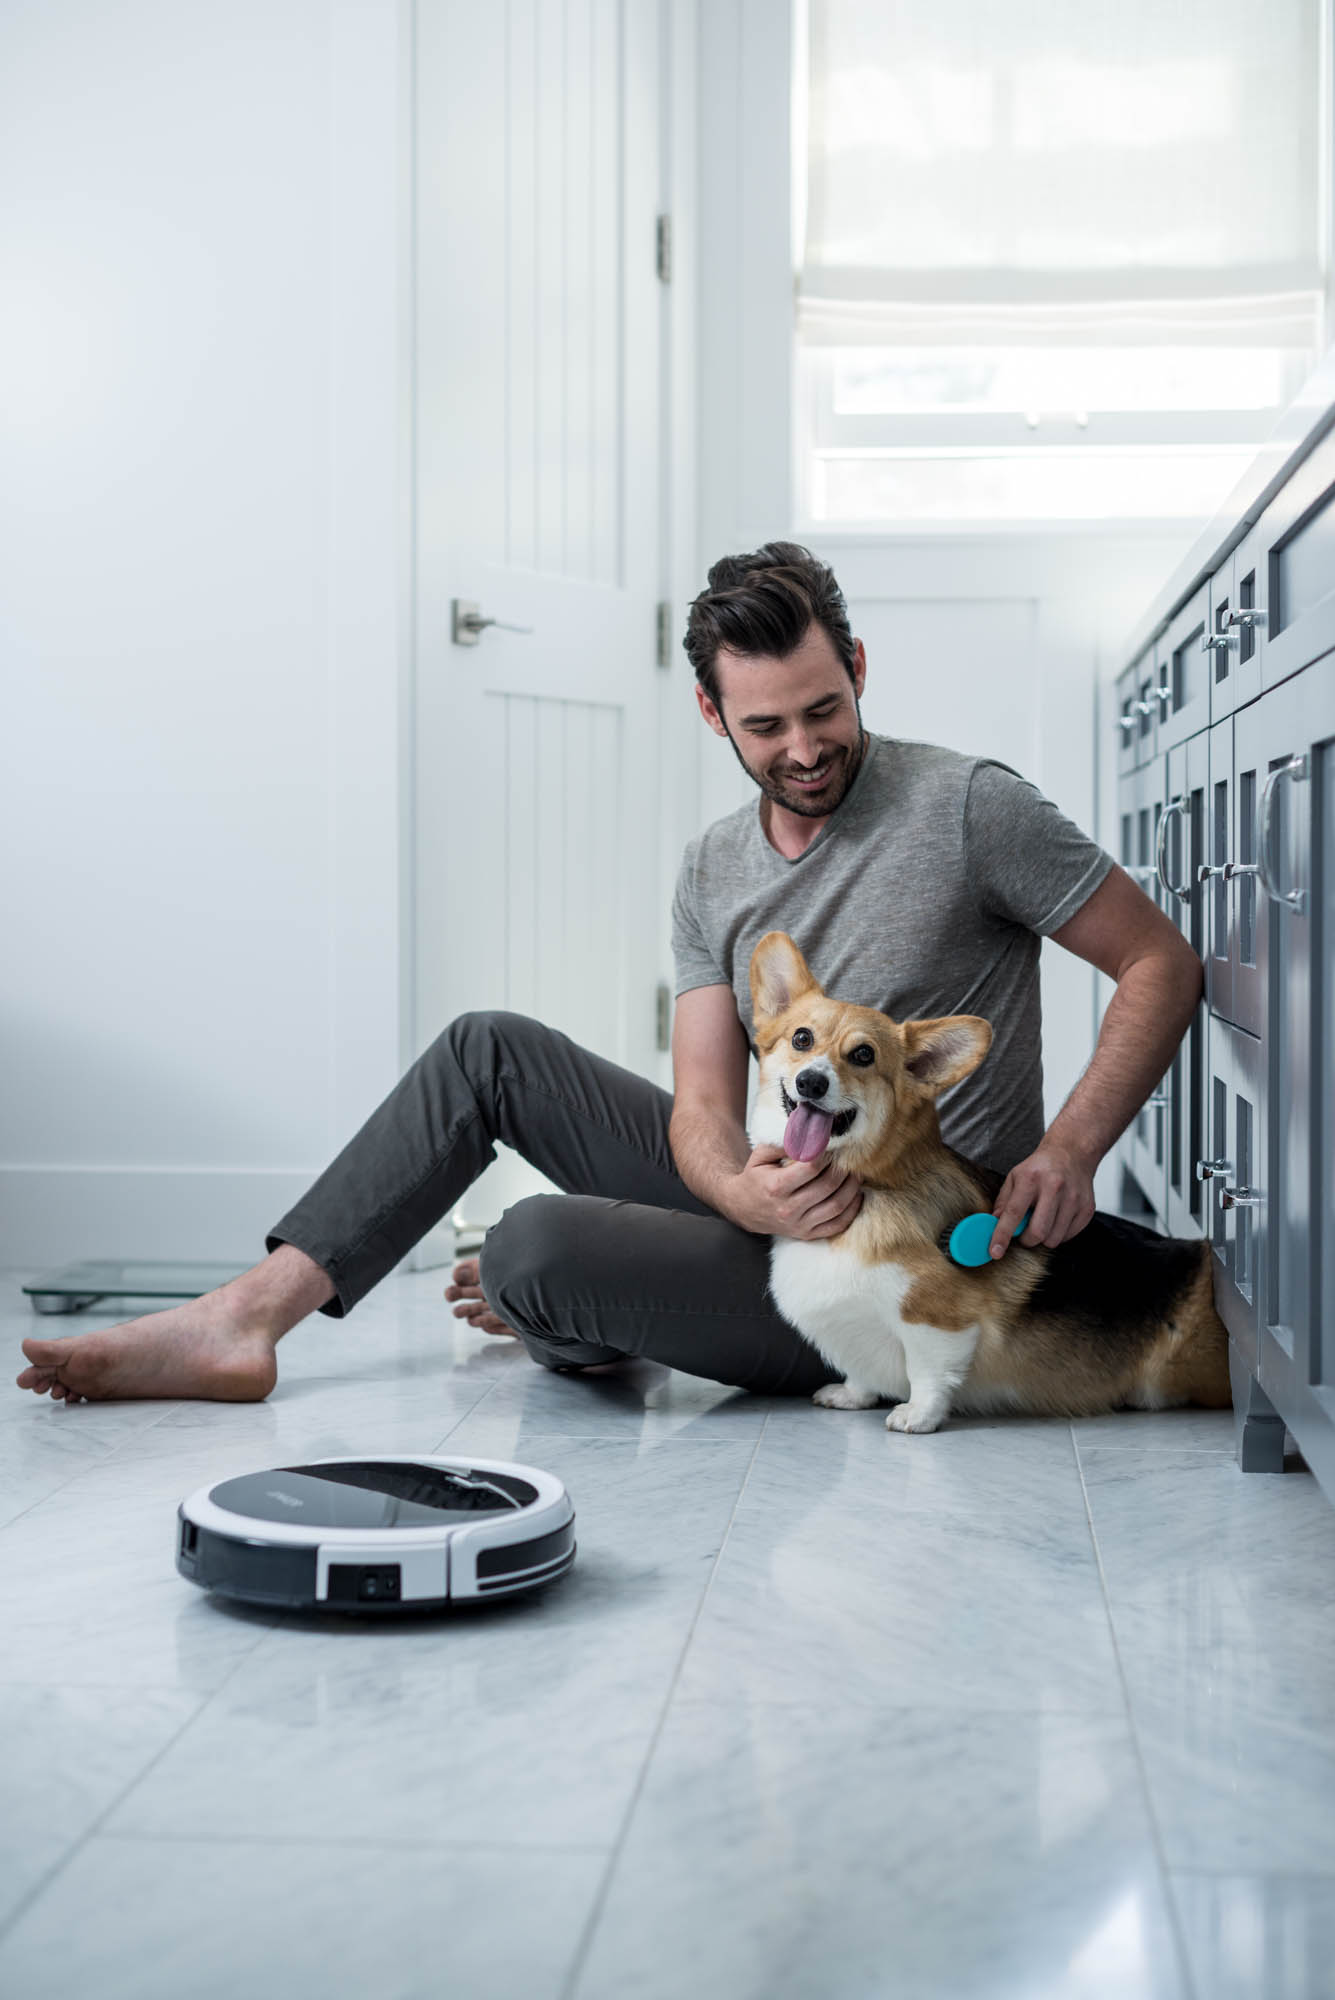 Man with Corgi dog and vacuum